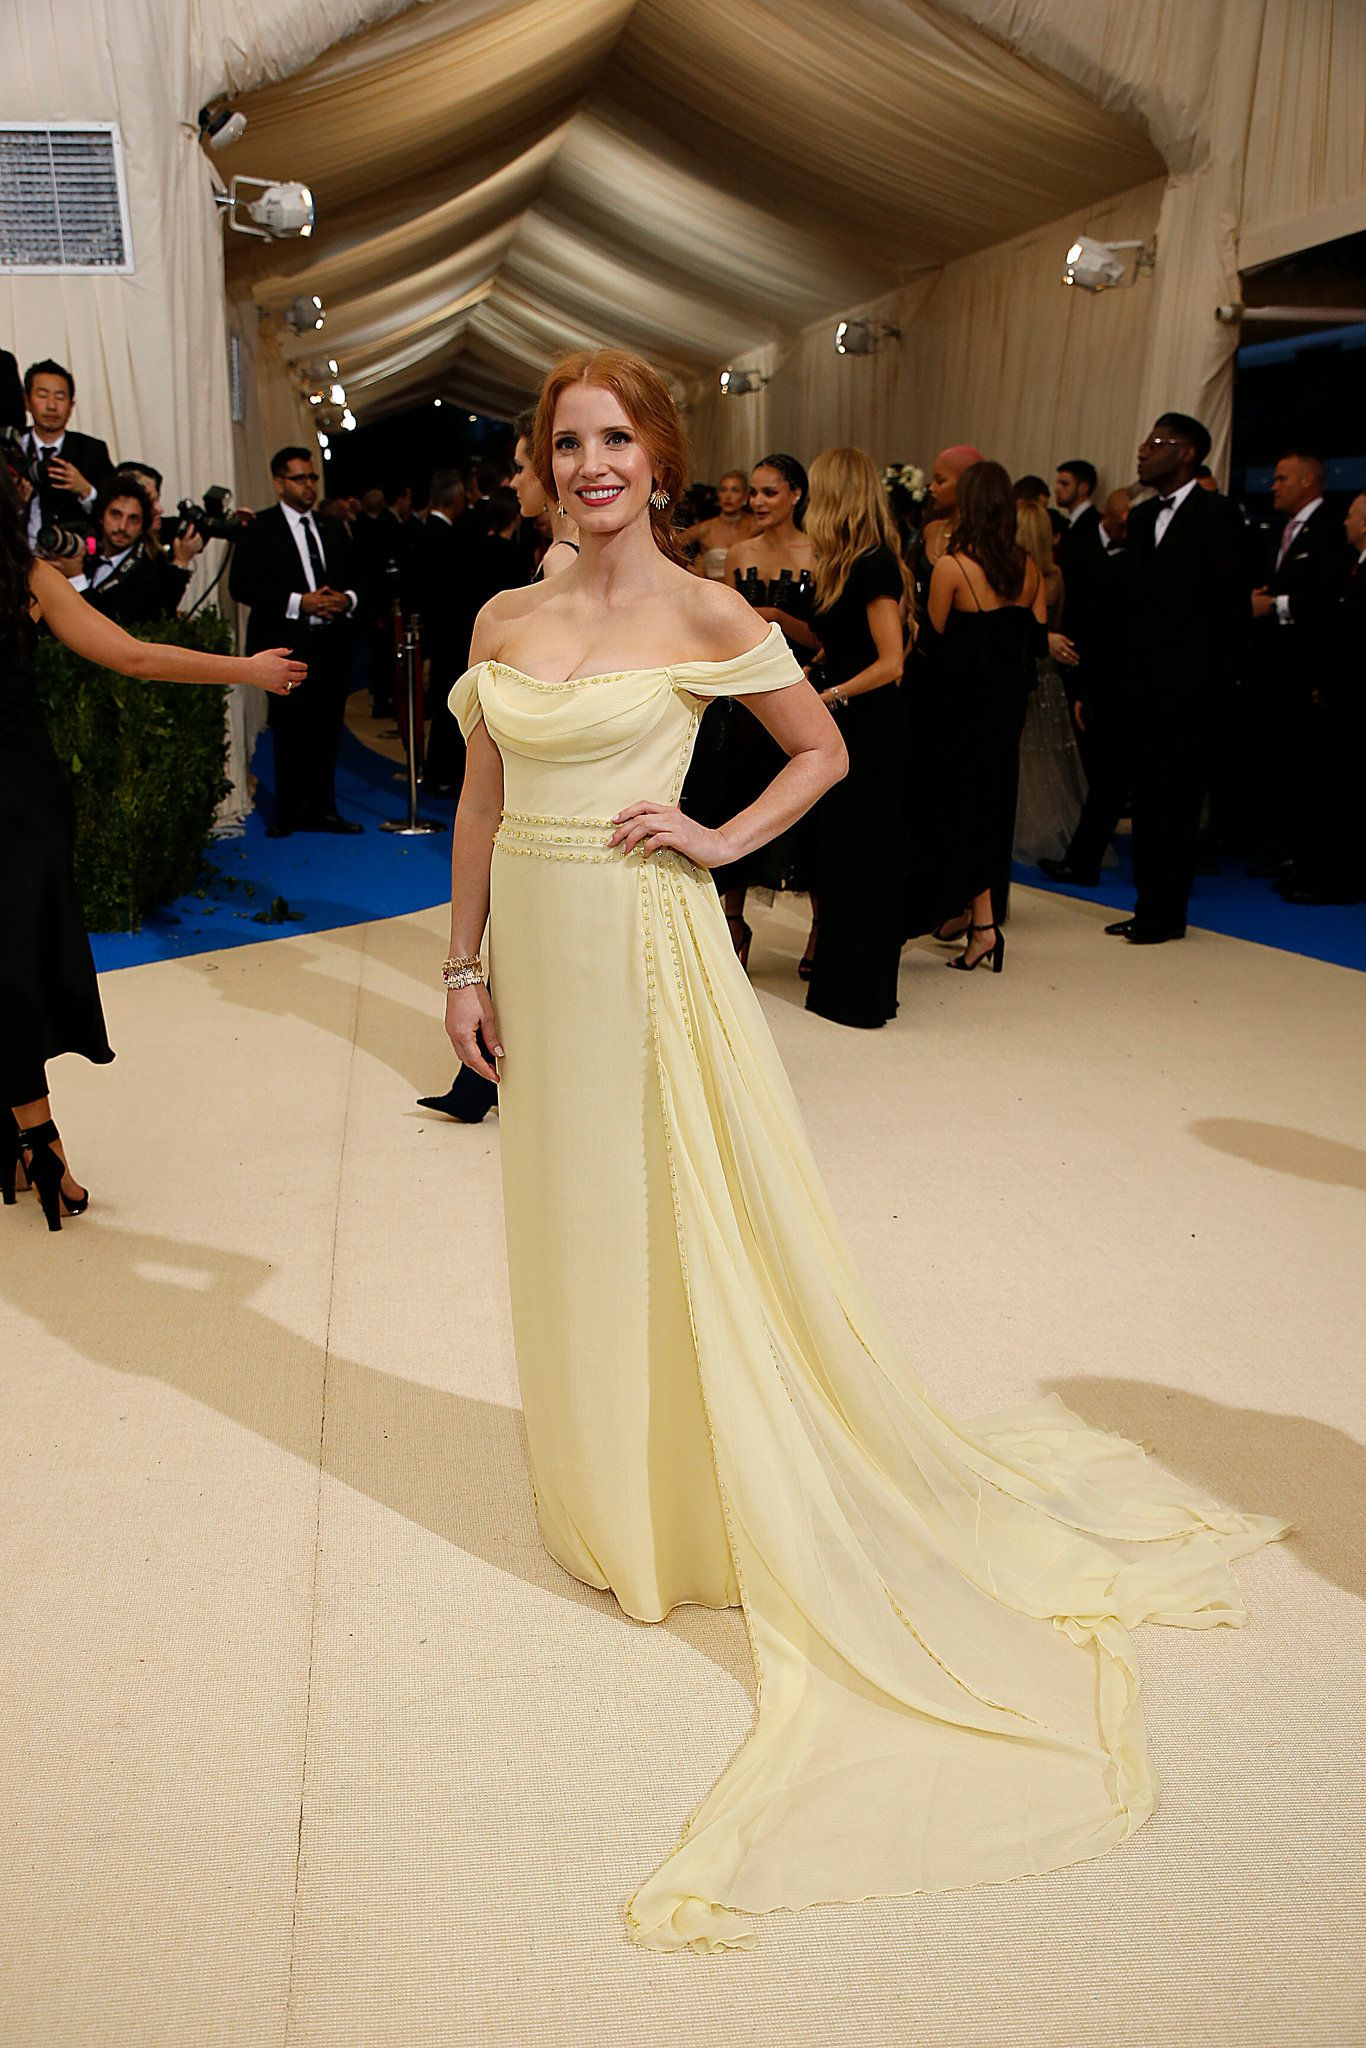 See which celebrities ascended the steps of the Met on Monday night for the so-called Oscars of the East Coast — and, of course, what they wore.